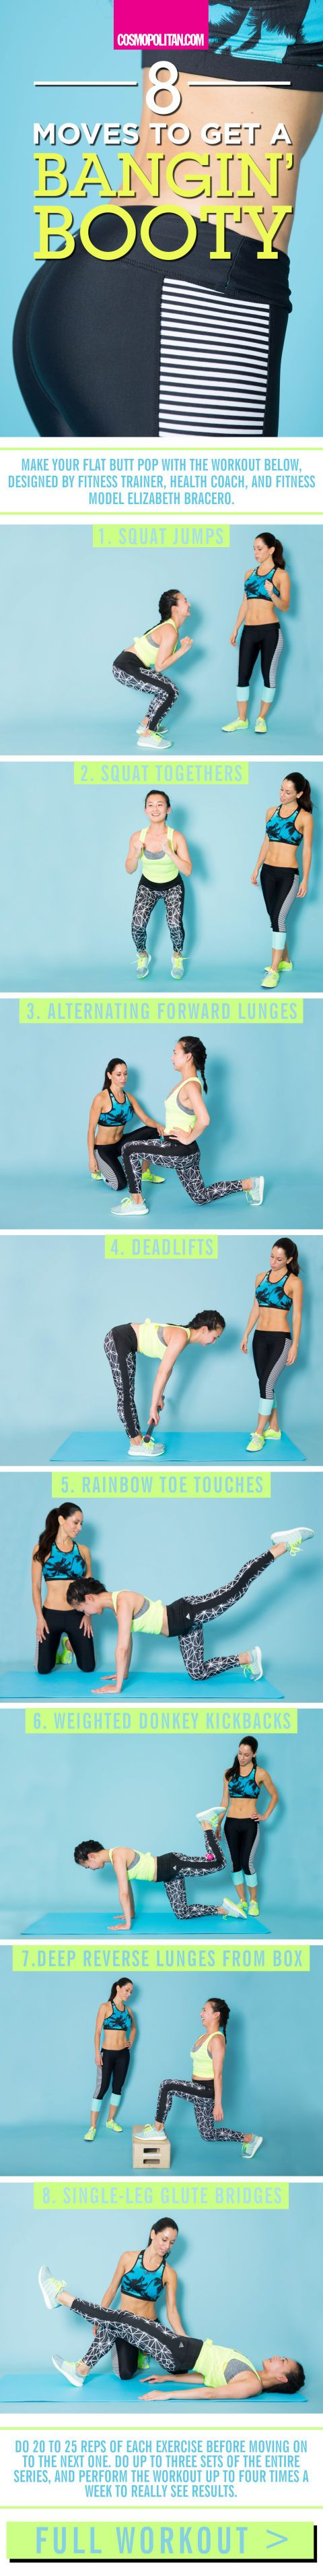 8 Moves to Get a Bangin' Booty